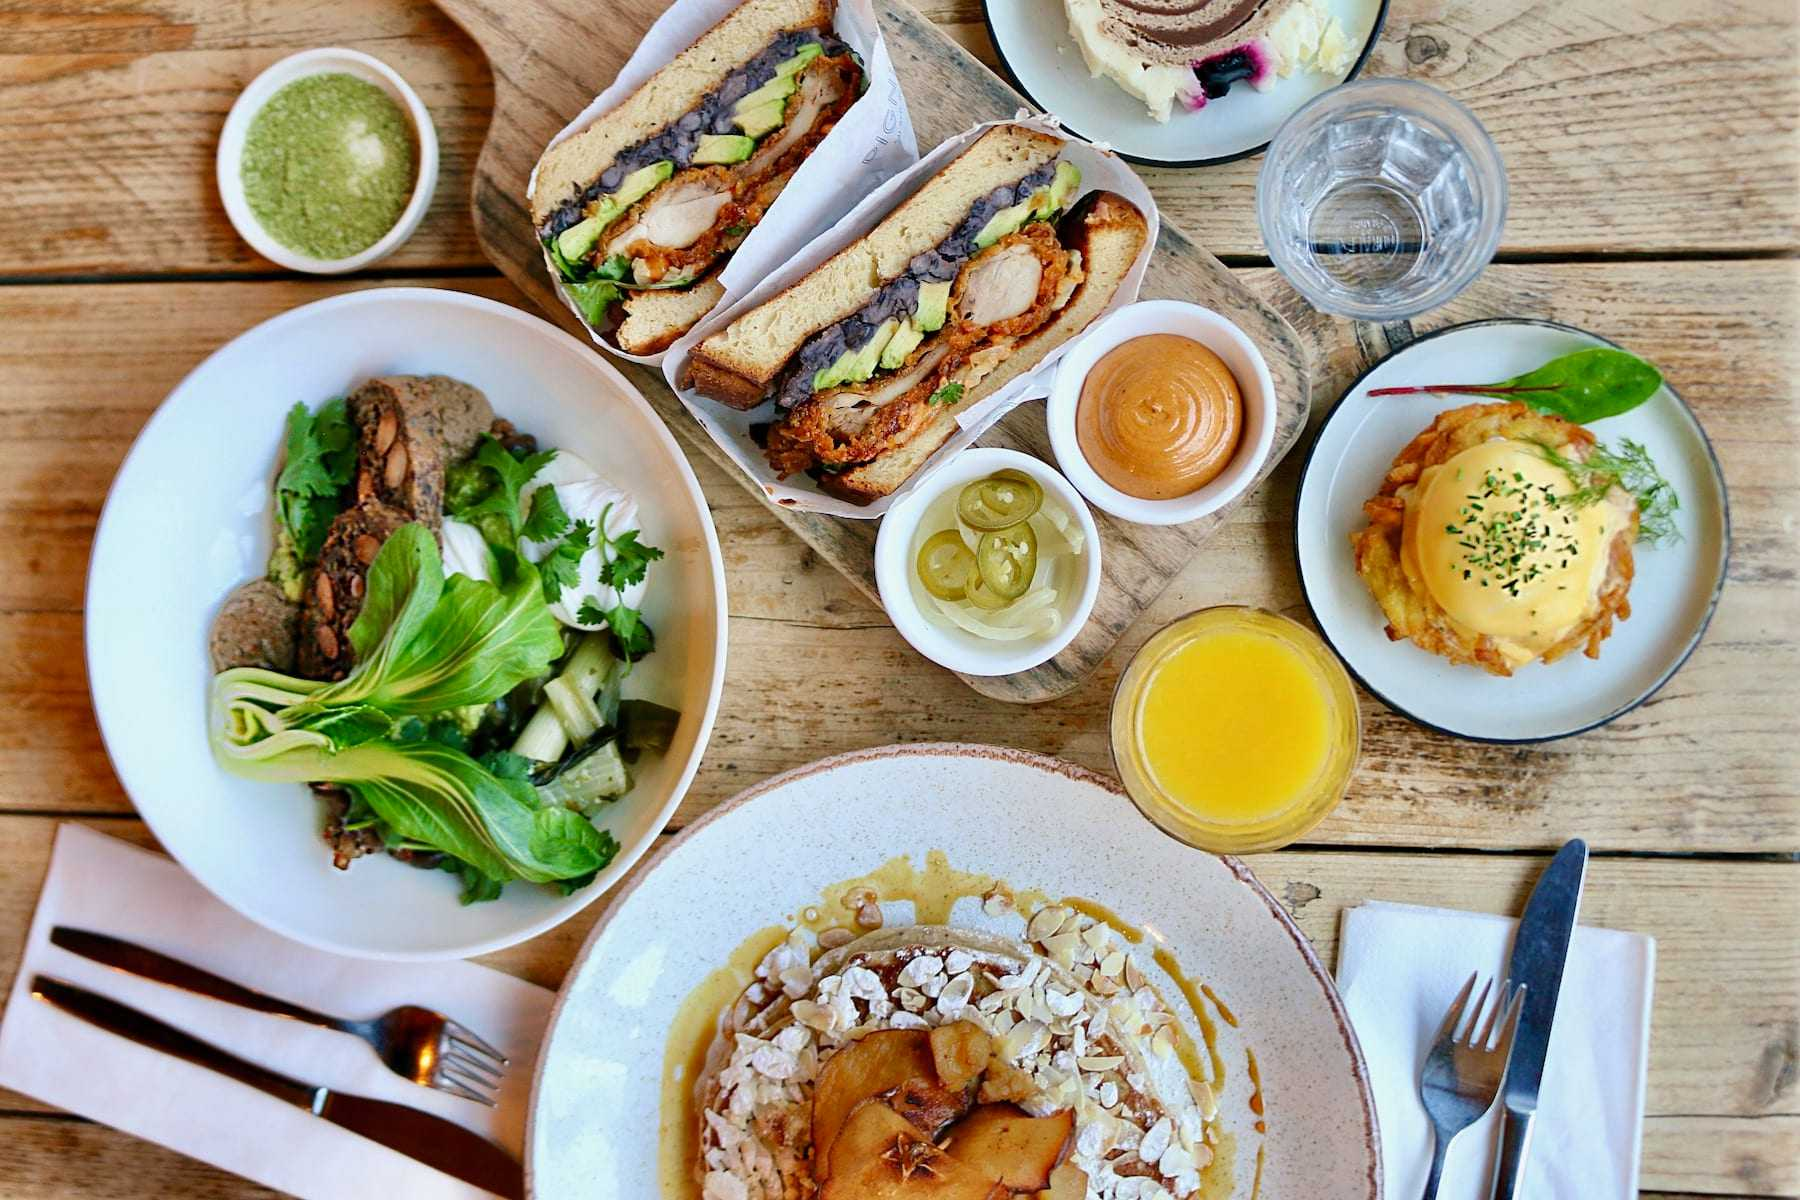 Appetizing Amsterdam brunch dishes: vegetarian bowl, chicken sandwiches, poached eggs on hash browns, pancakes